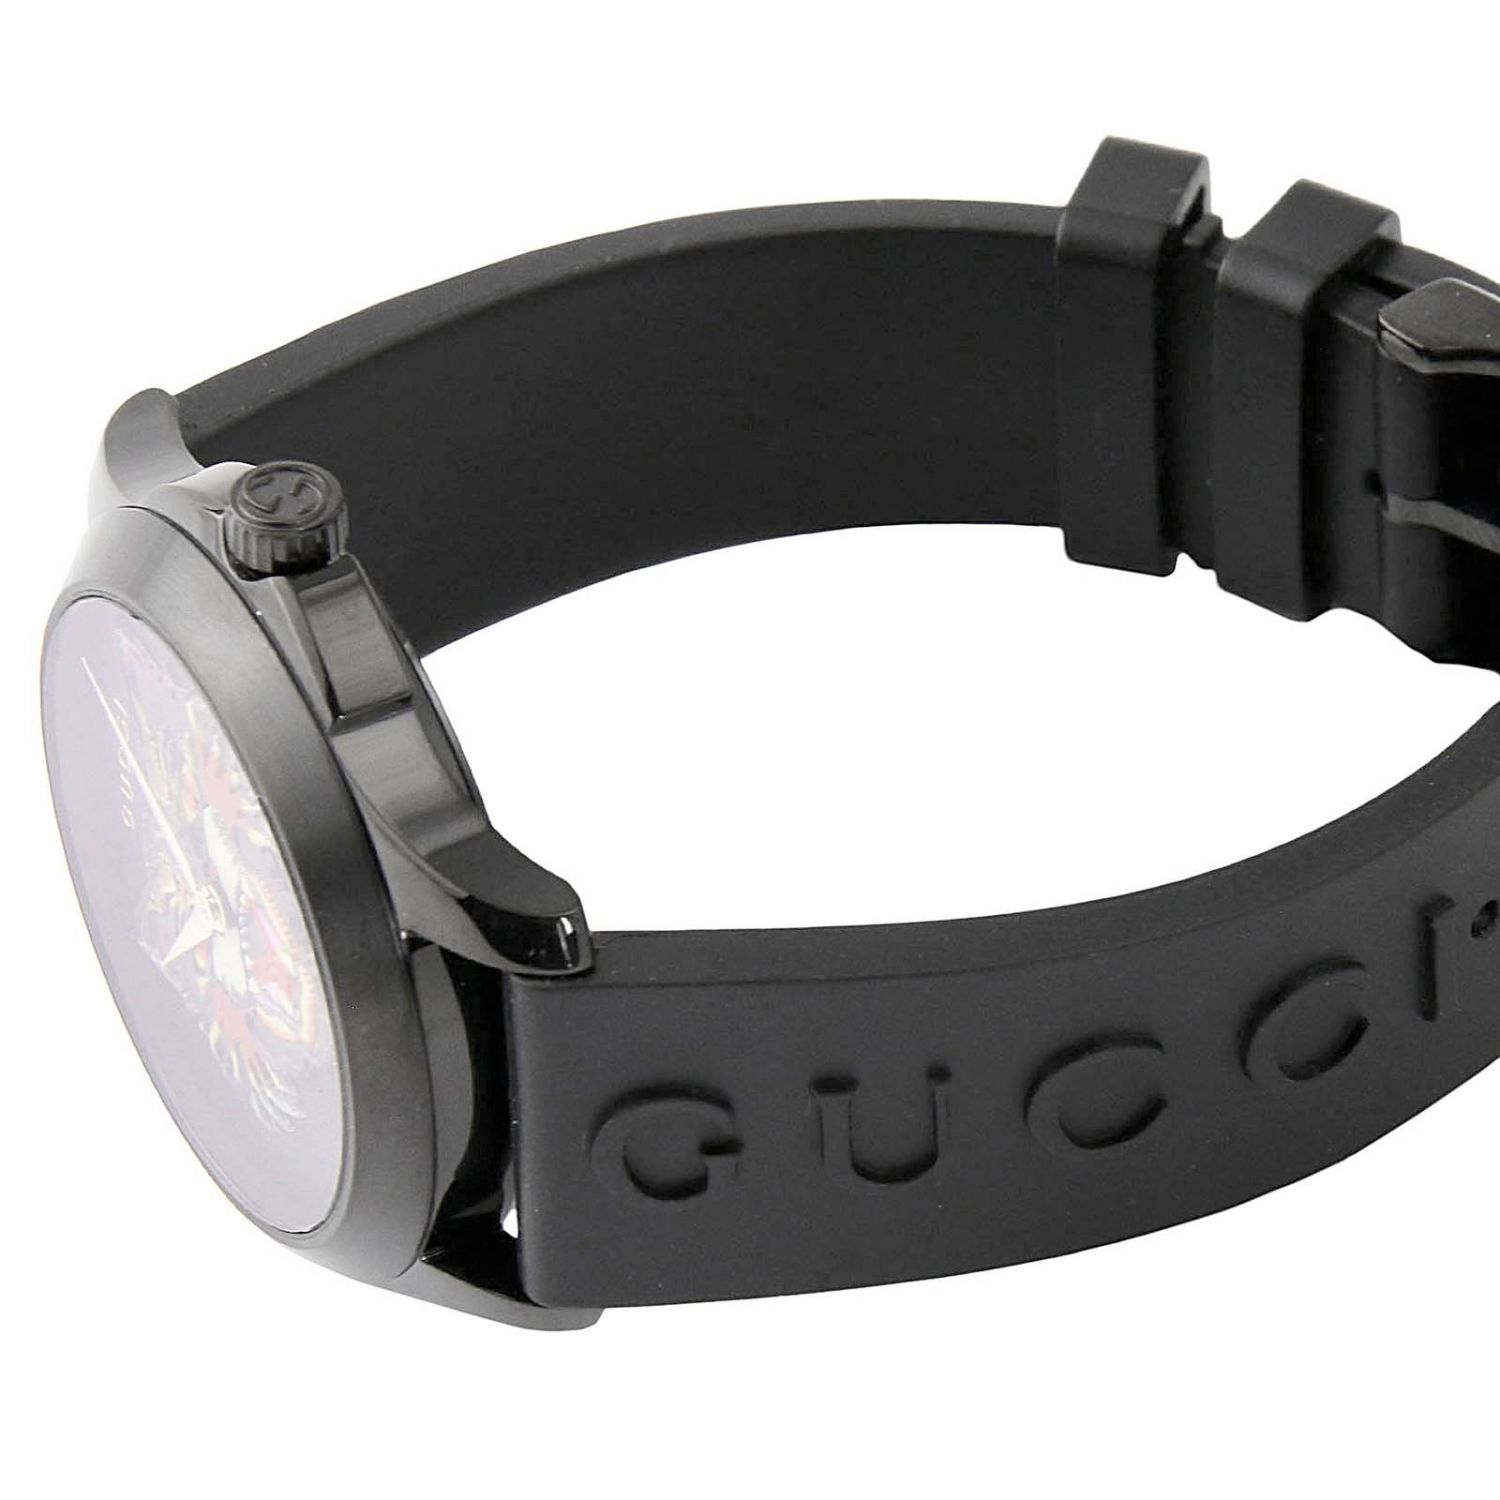 G-Timeless watch 38 mm case in PVD brushed black 3